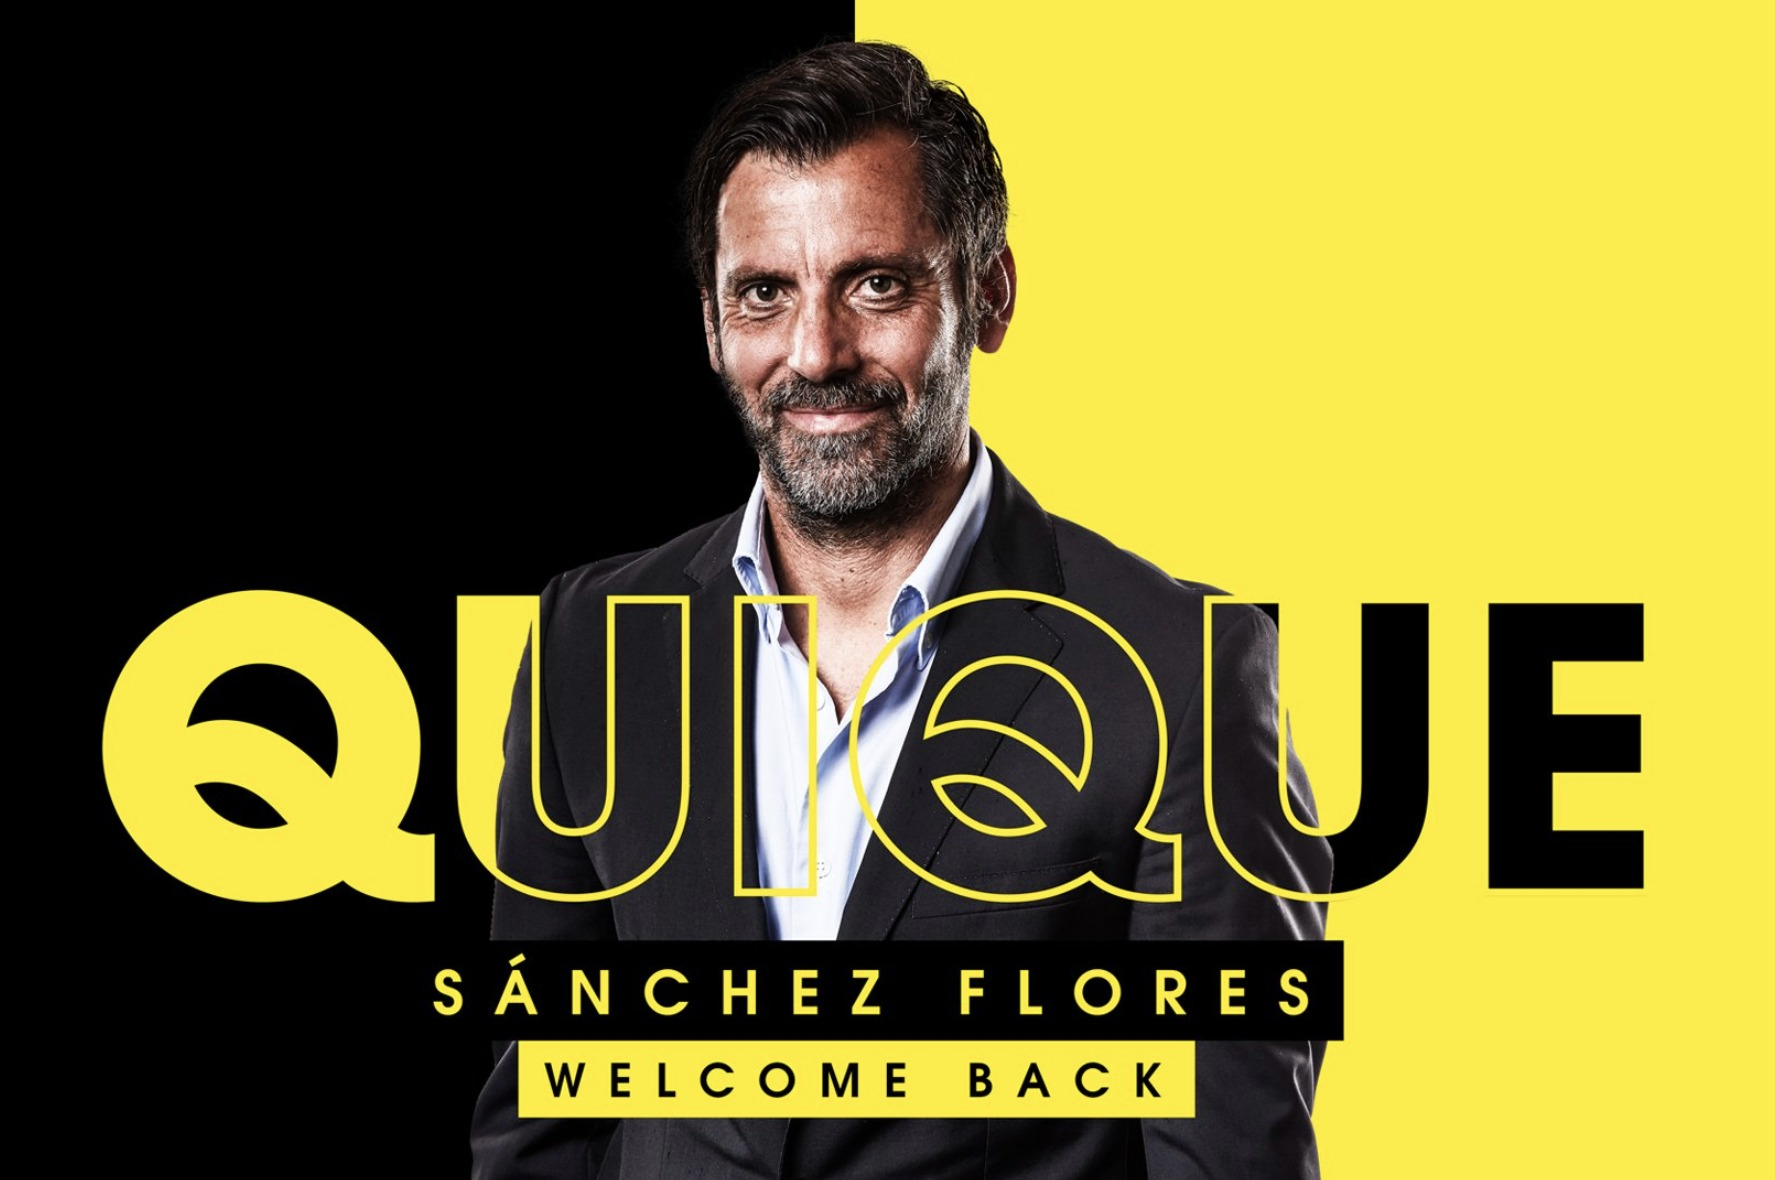 Watford sacked Javi Gracia after just four games of the Premier League season and appointed Sanchez Flores 1